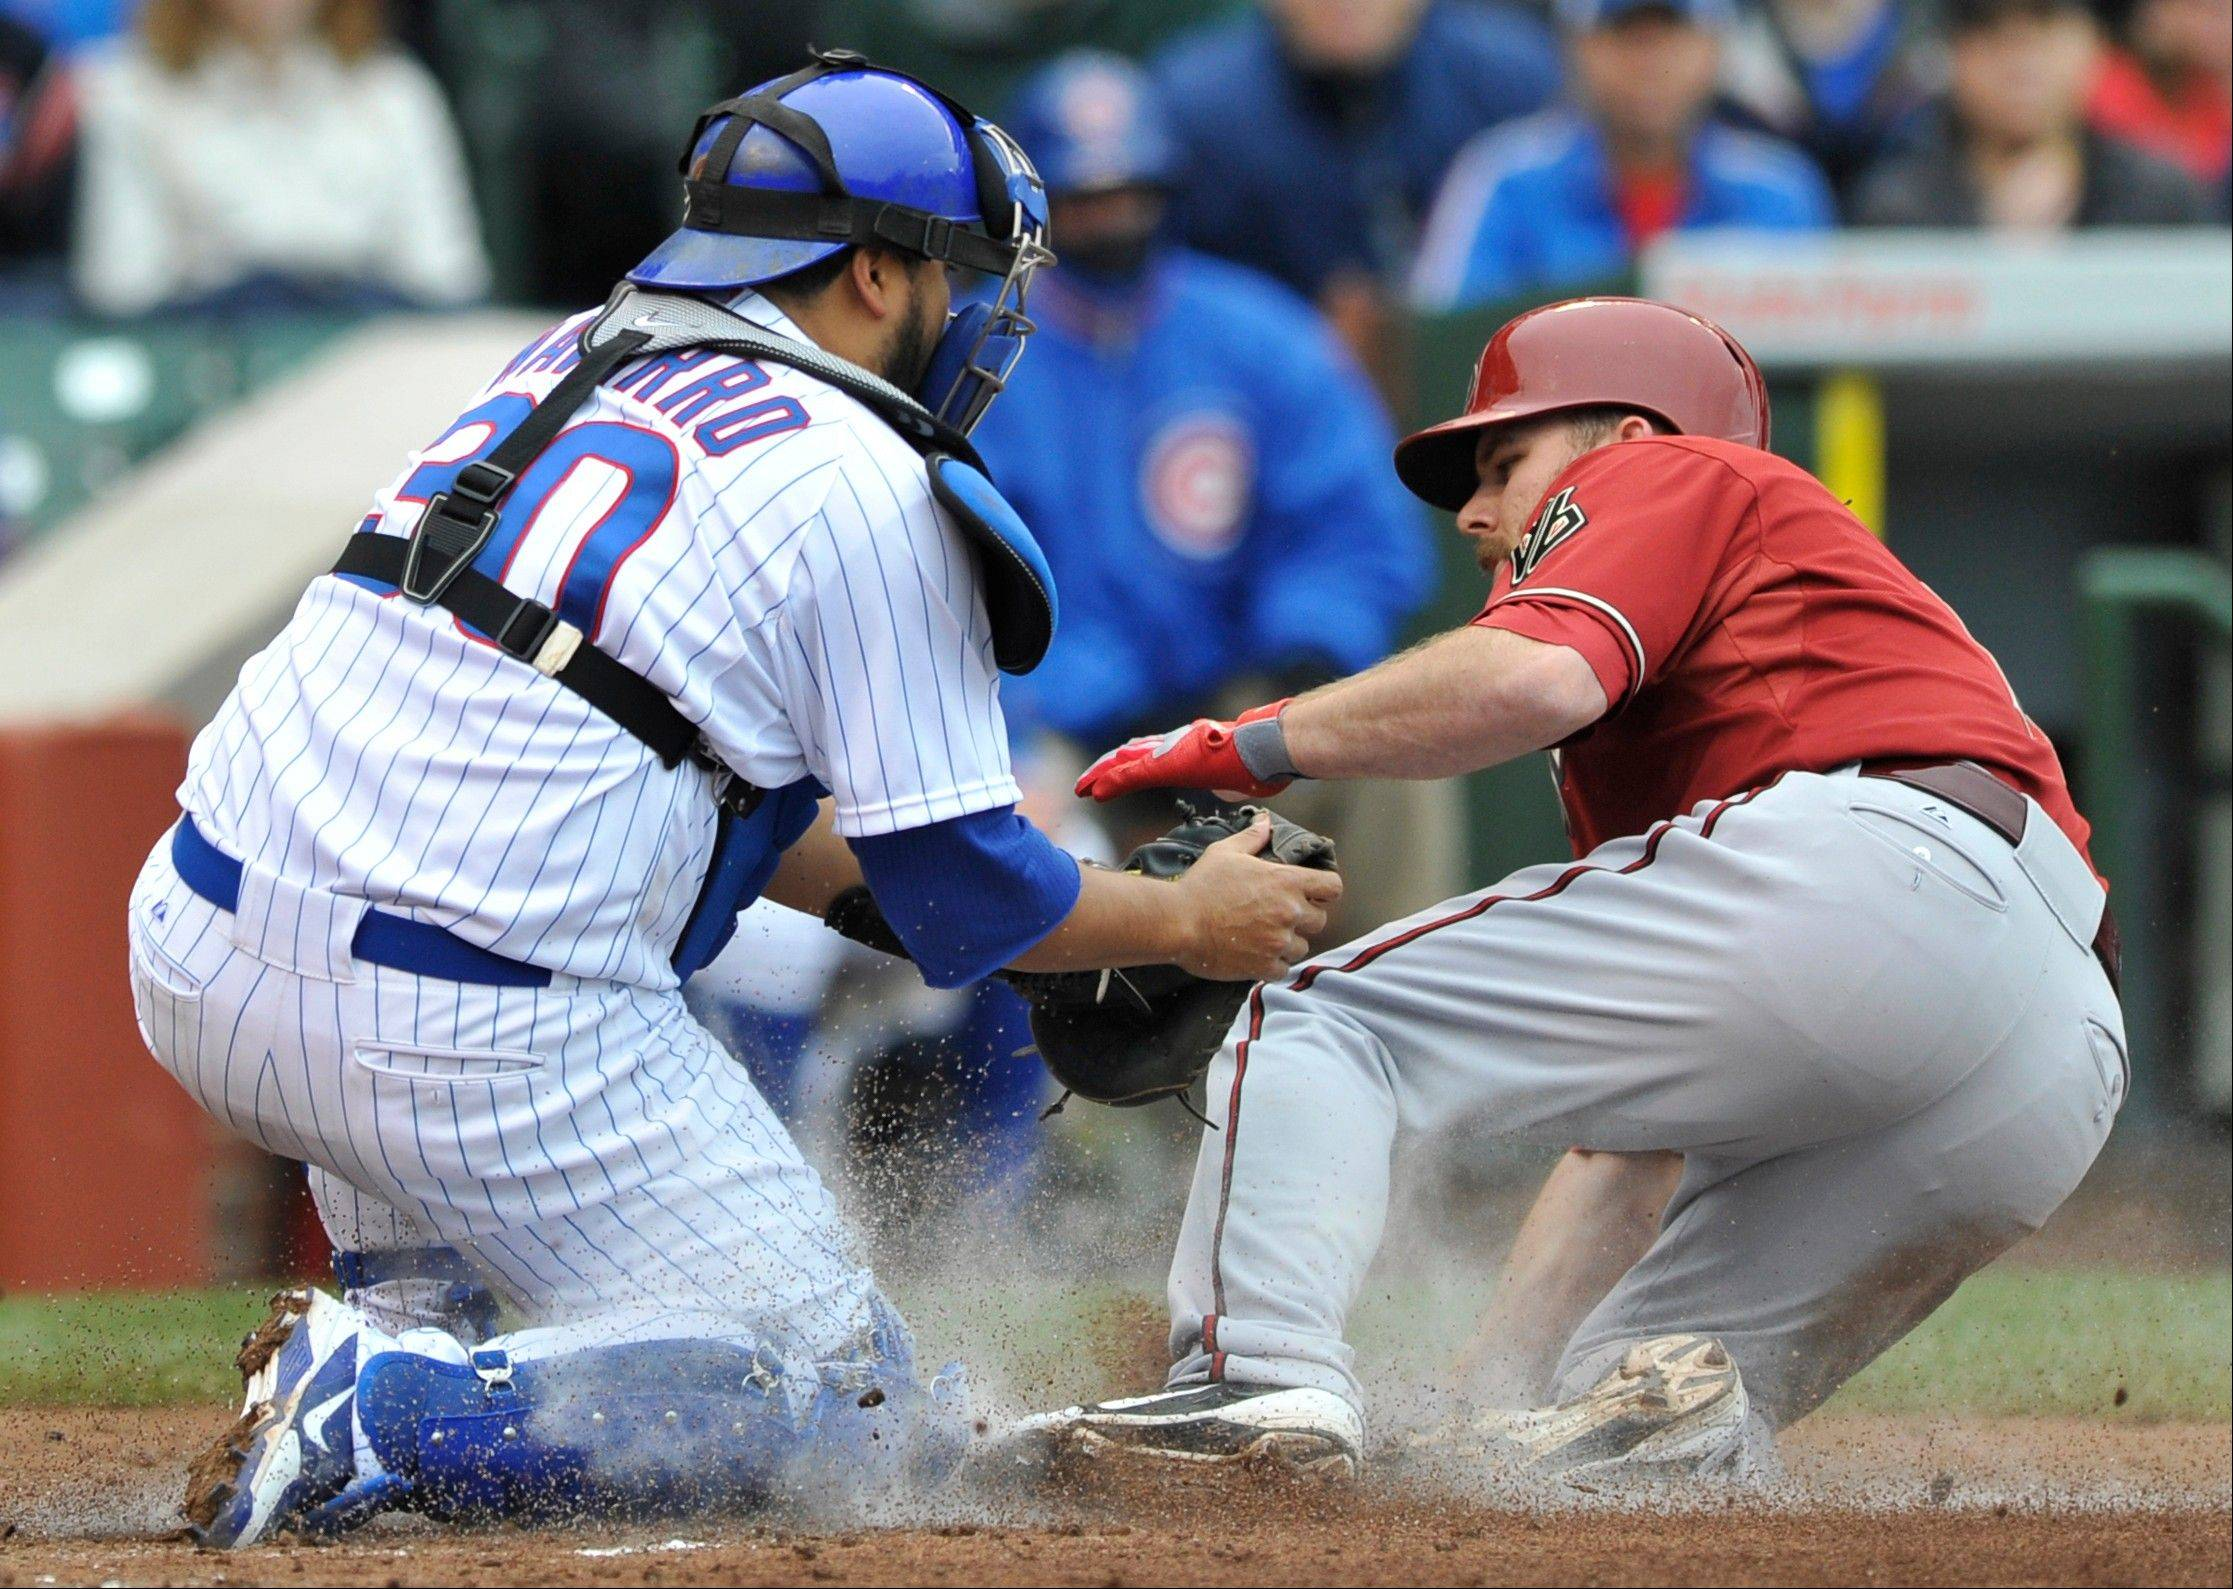 Arizona Diamondbacks' Jason Kubel right is tagged out by Chicago Cubs catcher Dioner Navarro left, at home plate after Wil Nieves grounded into a fielder's choice during the second inning of an MLB baseball game against the Chicago Cubs in Chicago, Sunday, June 2, 2013.